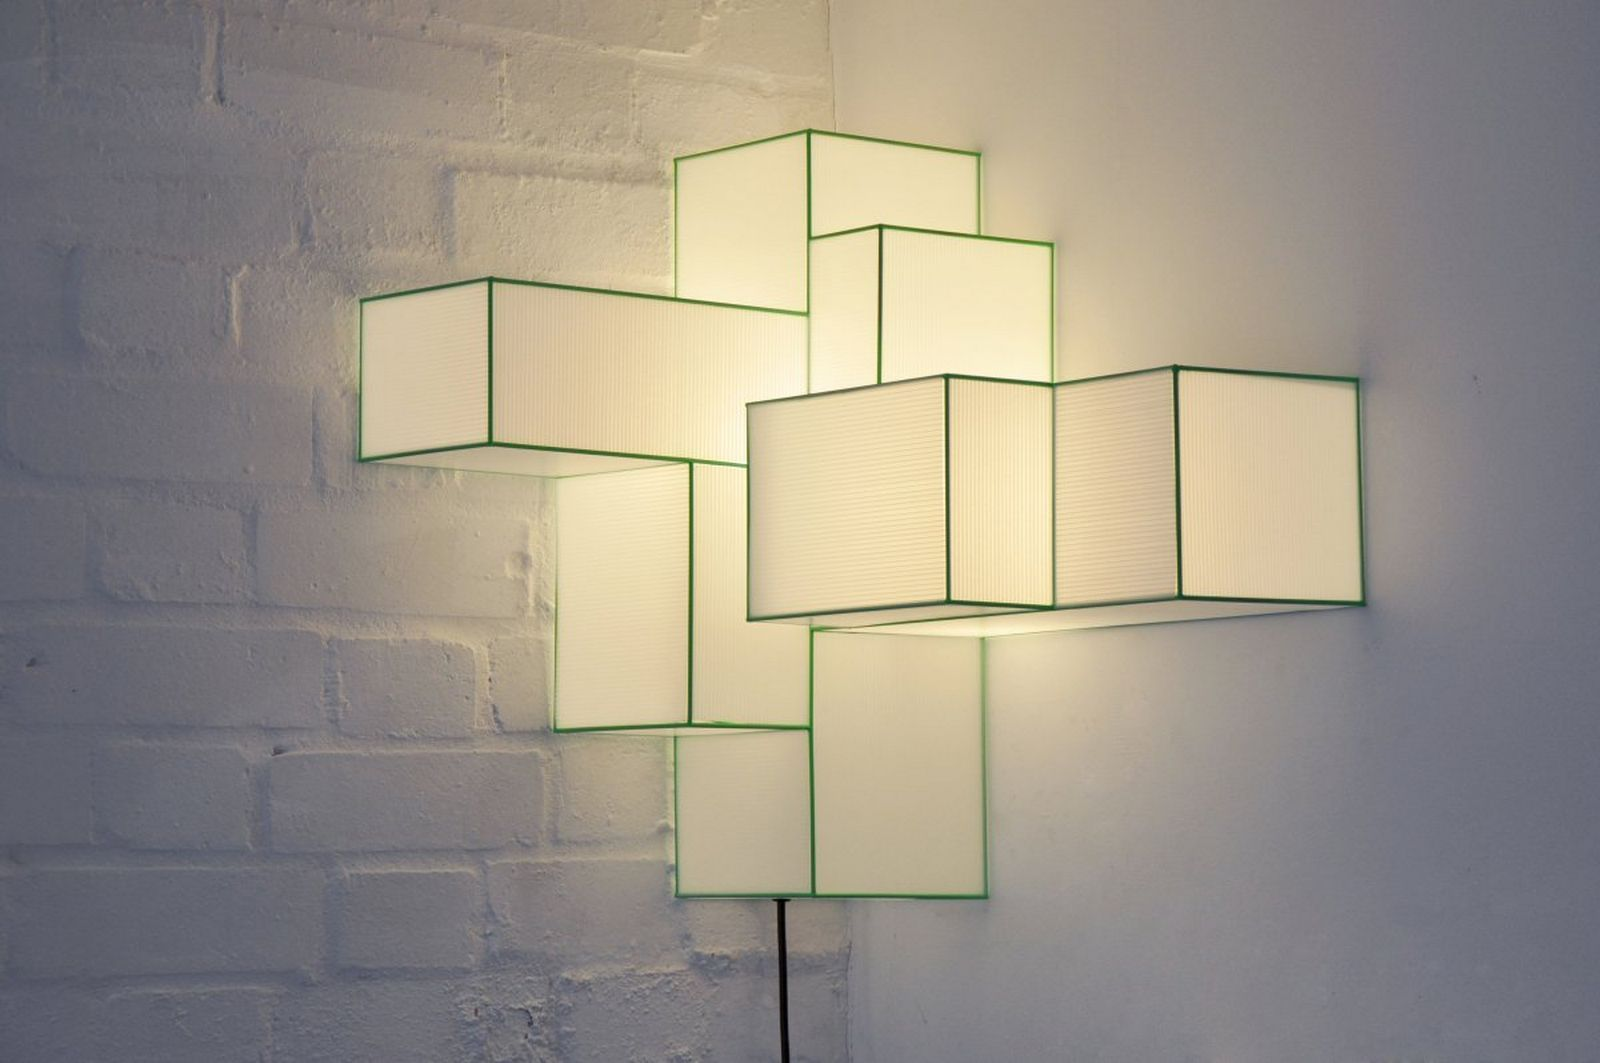 Modern Wall Light Fixtures: 17 Best images about ljós on Pinterest | Wall lighting, Wall boxes and  Search,Lighting